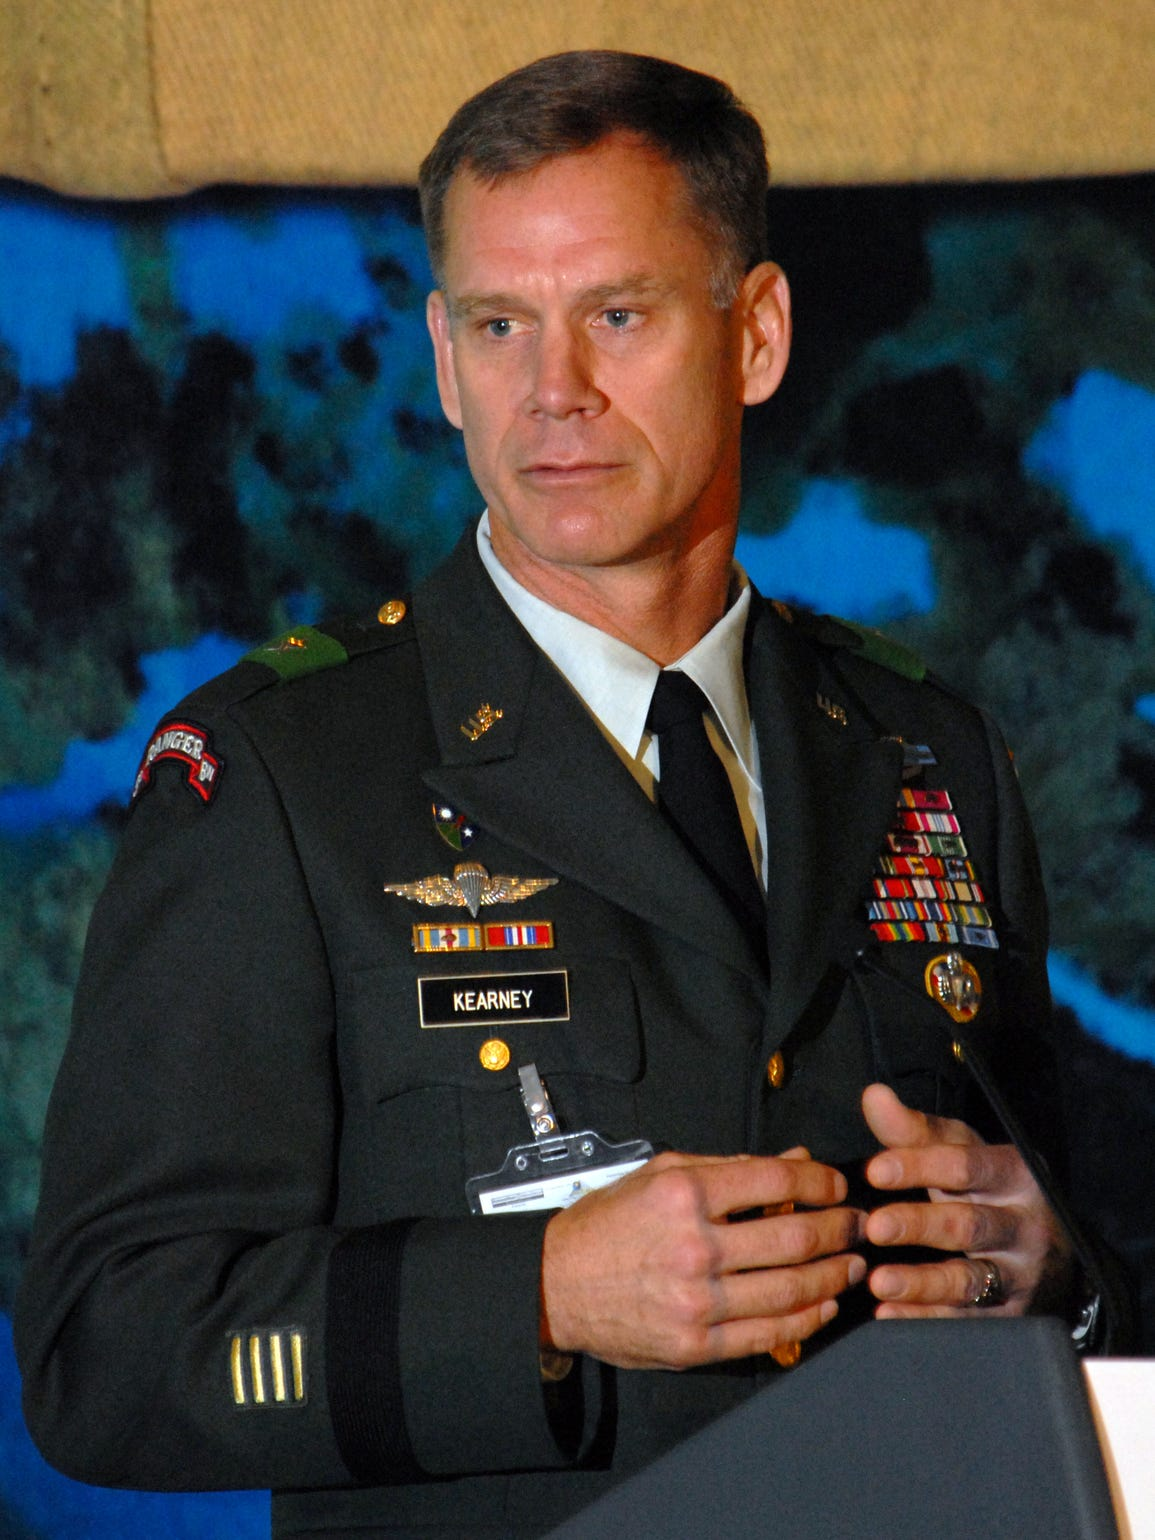 Maj. Gen. Frank Kearney, Commander of Special Operations